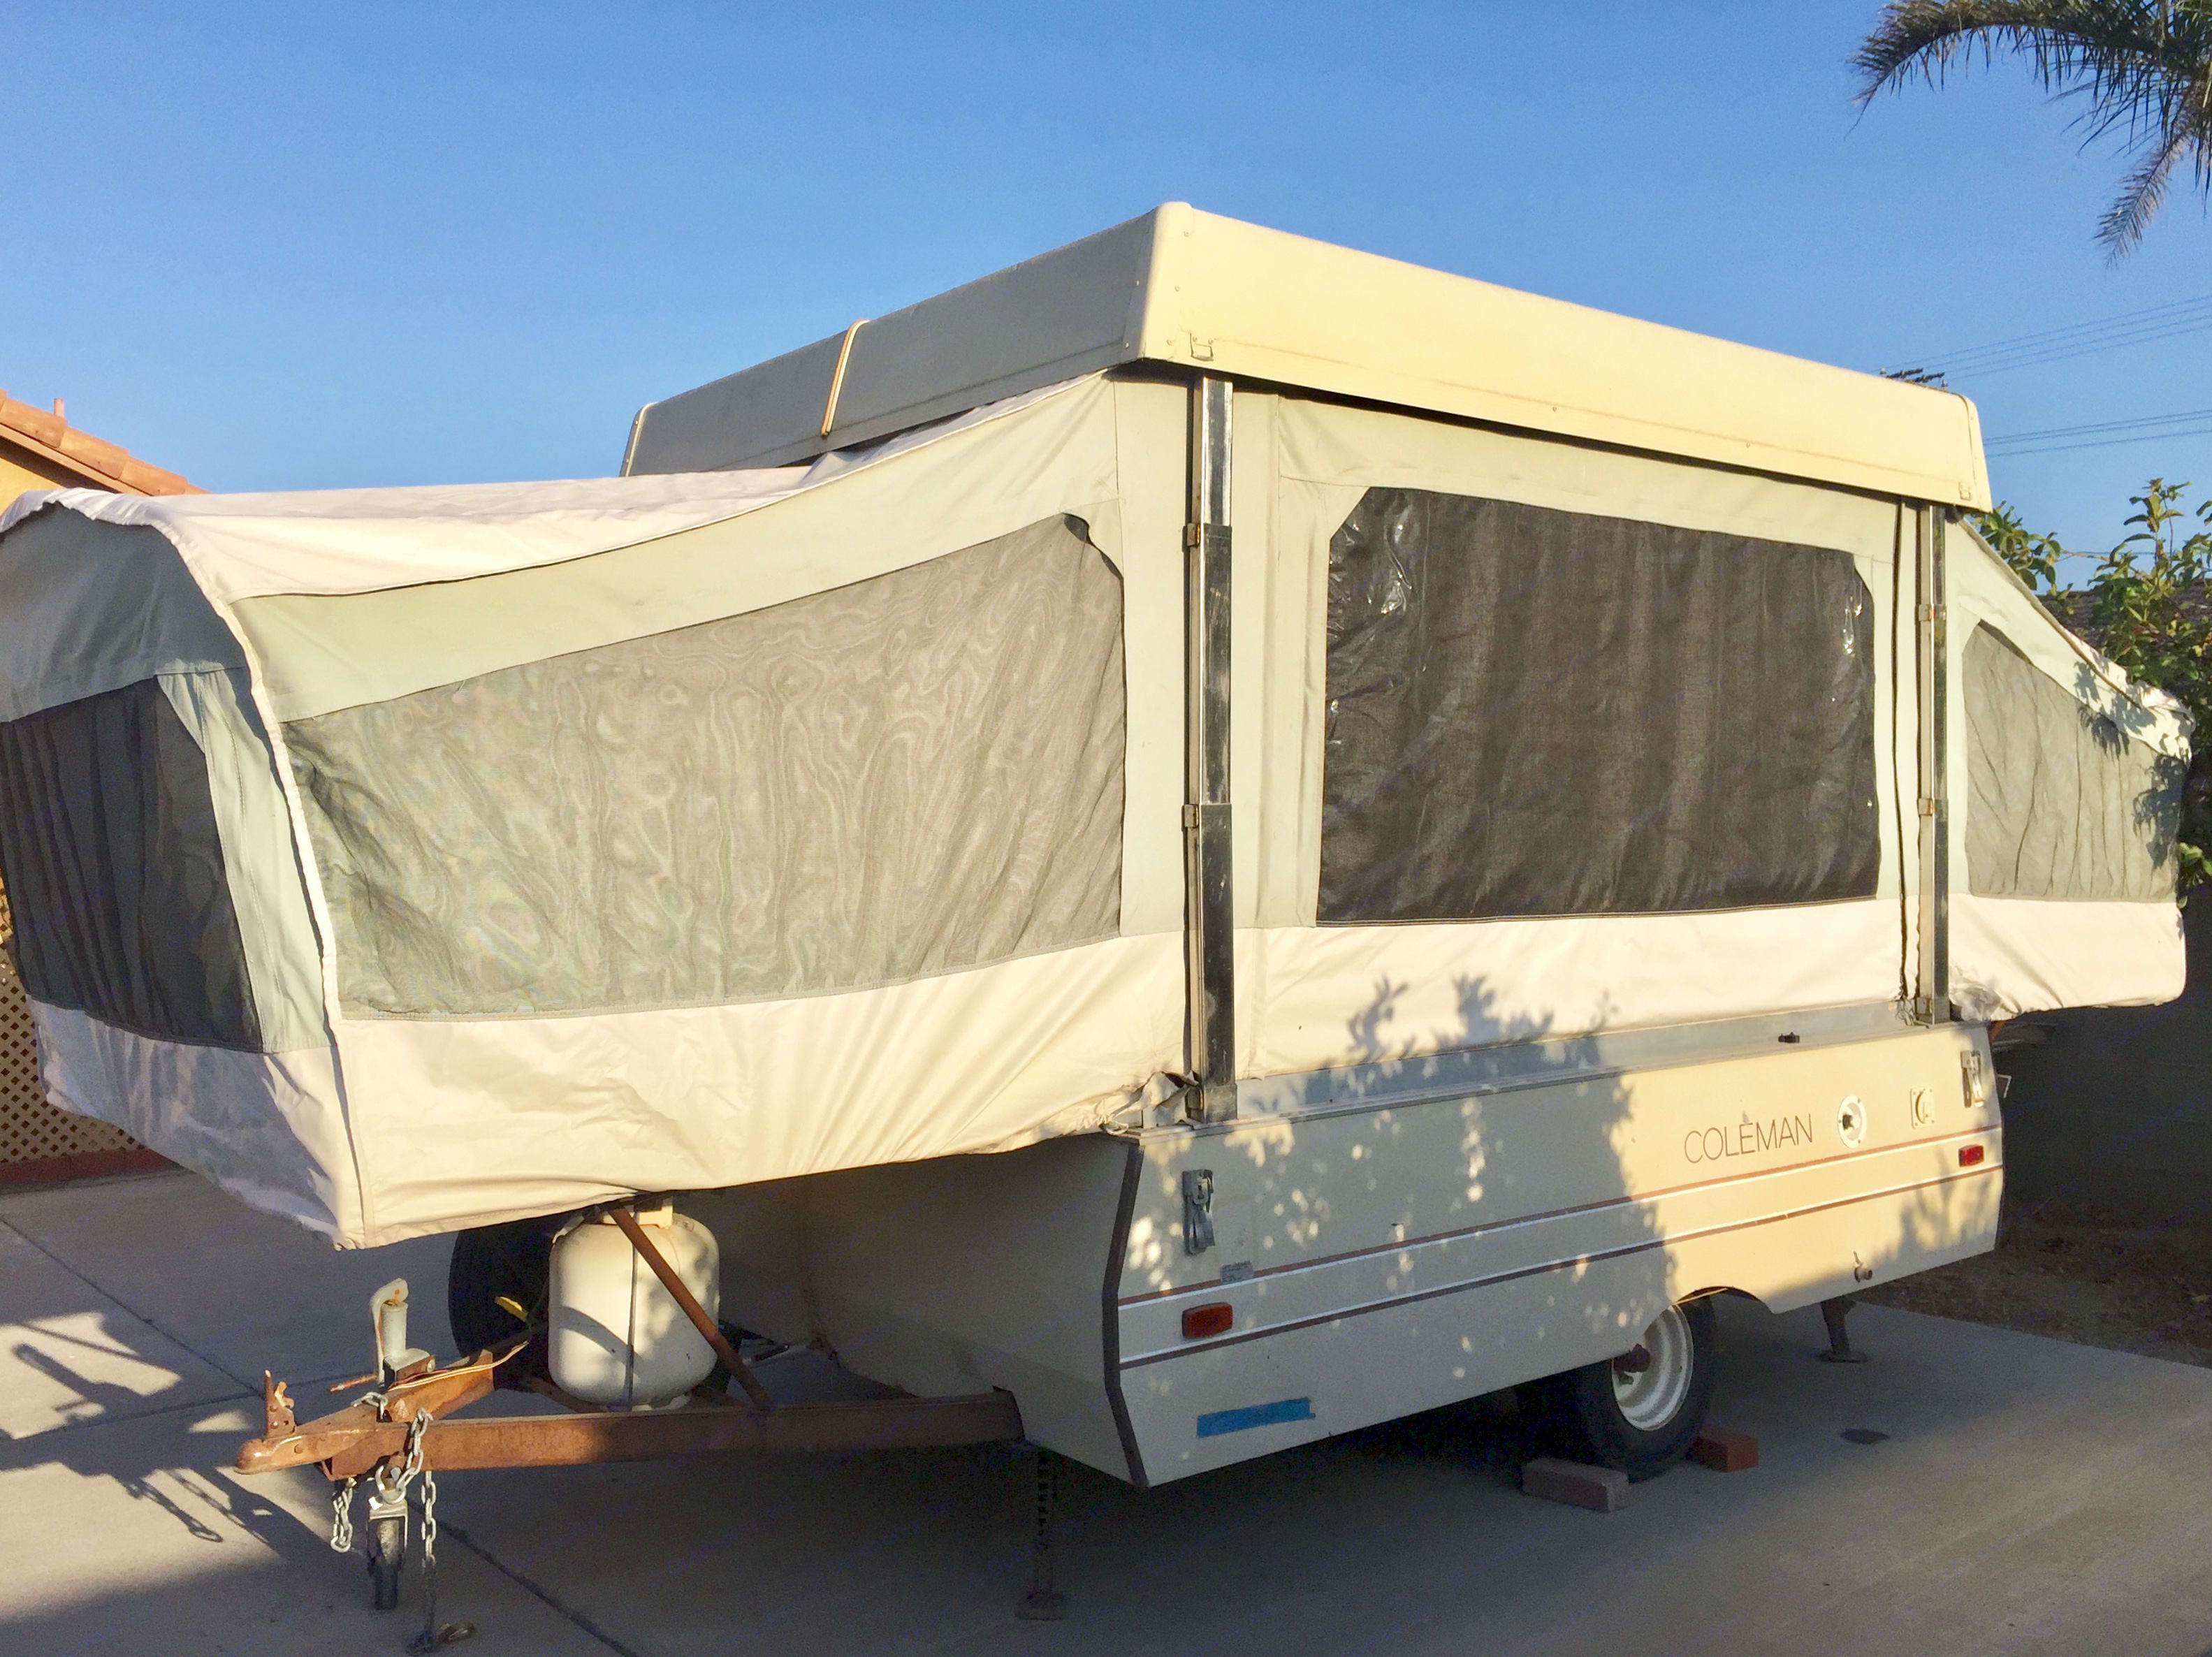 New canves with windows all around! Giving you a beautiful 360 view of your surroundings.. Coleman Other 1984